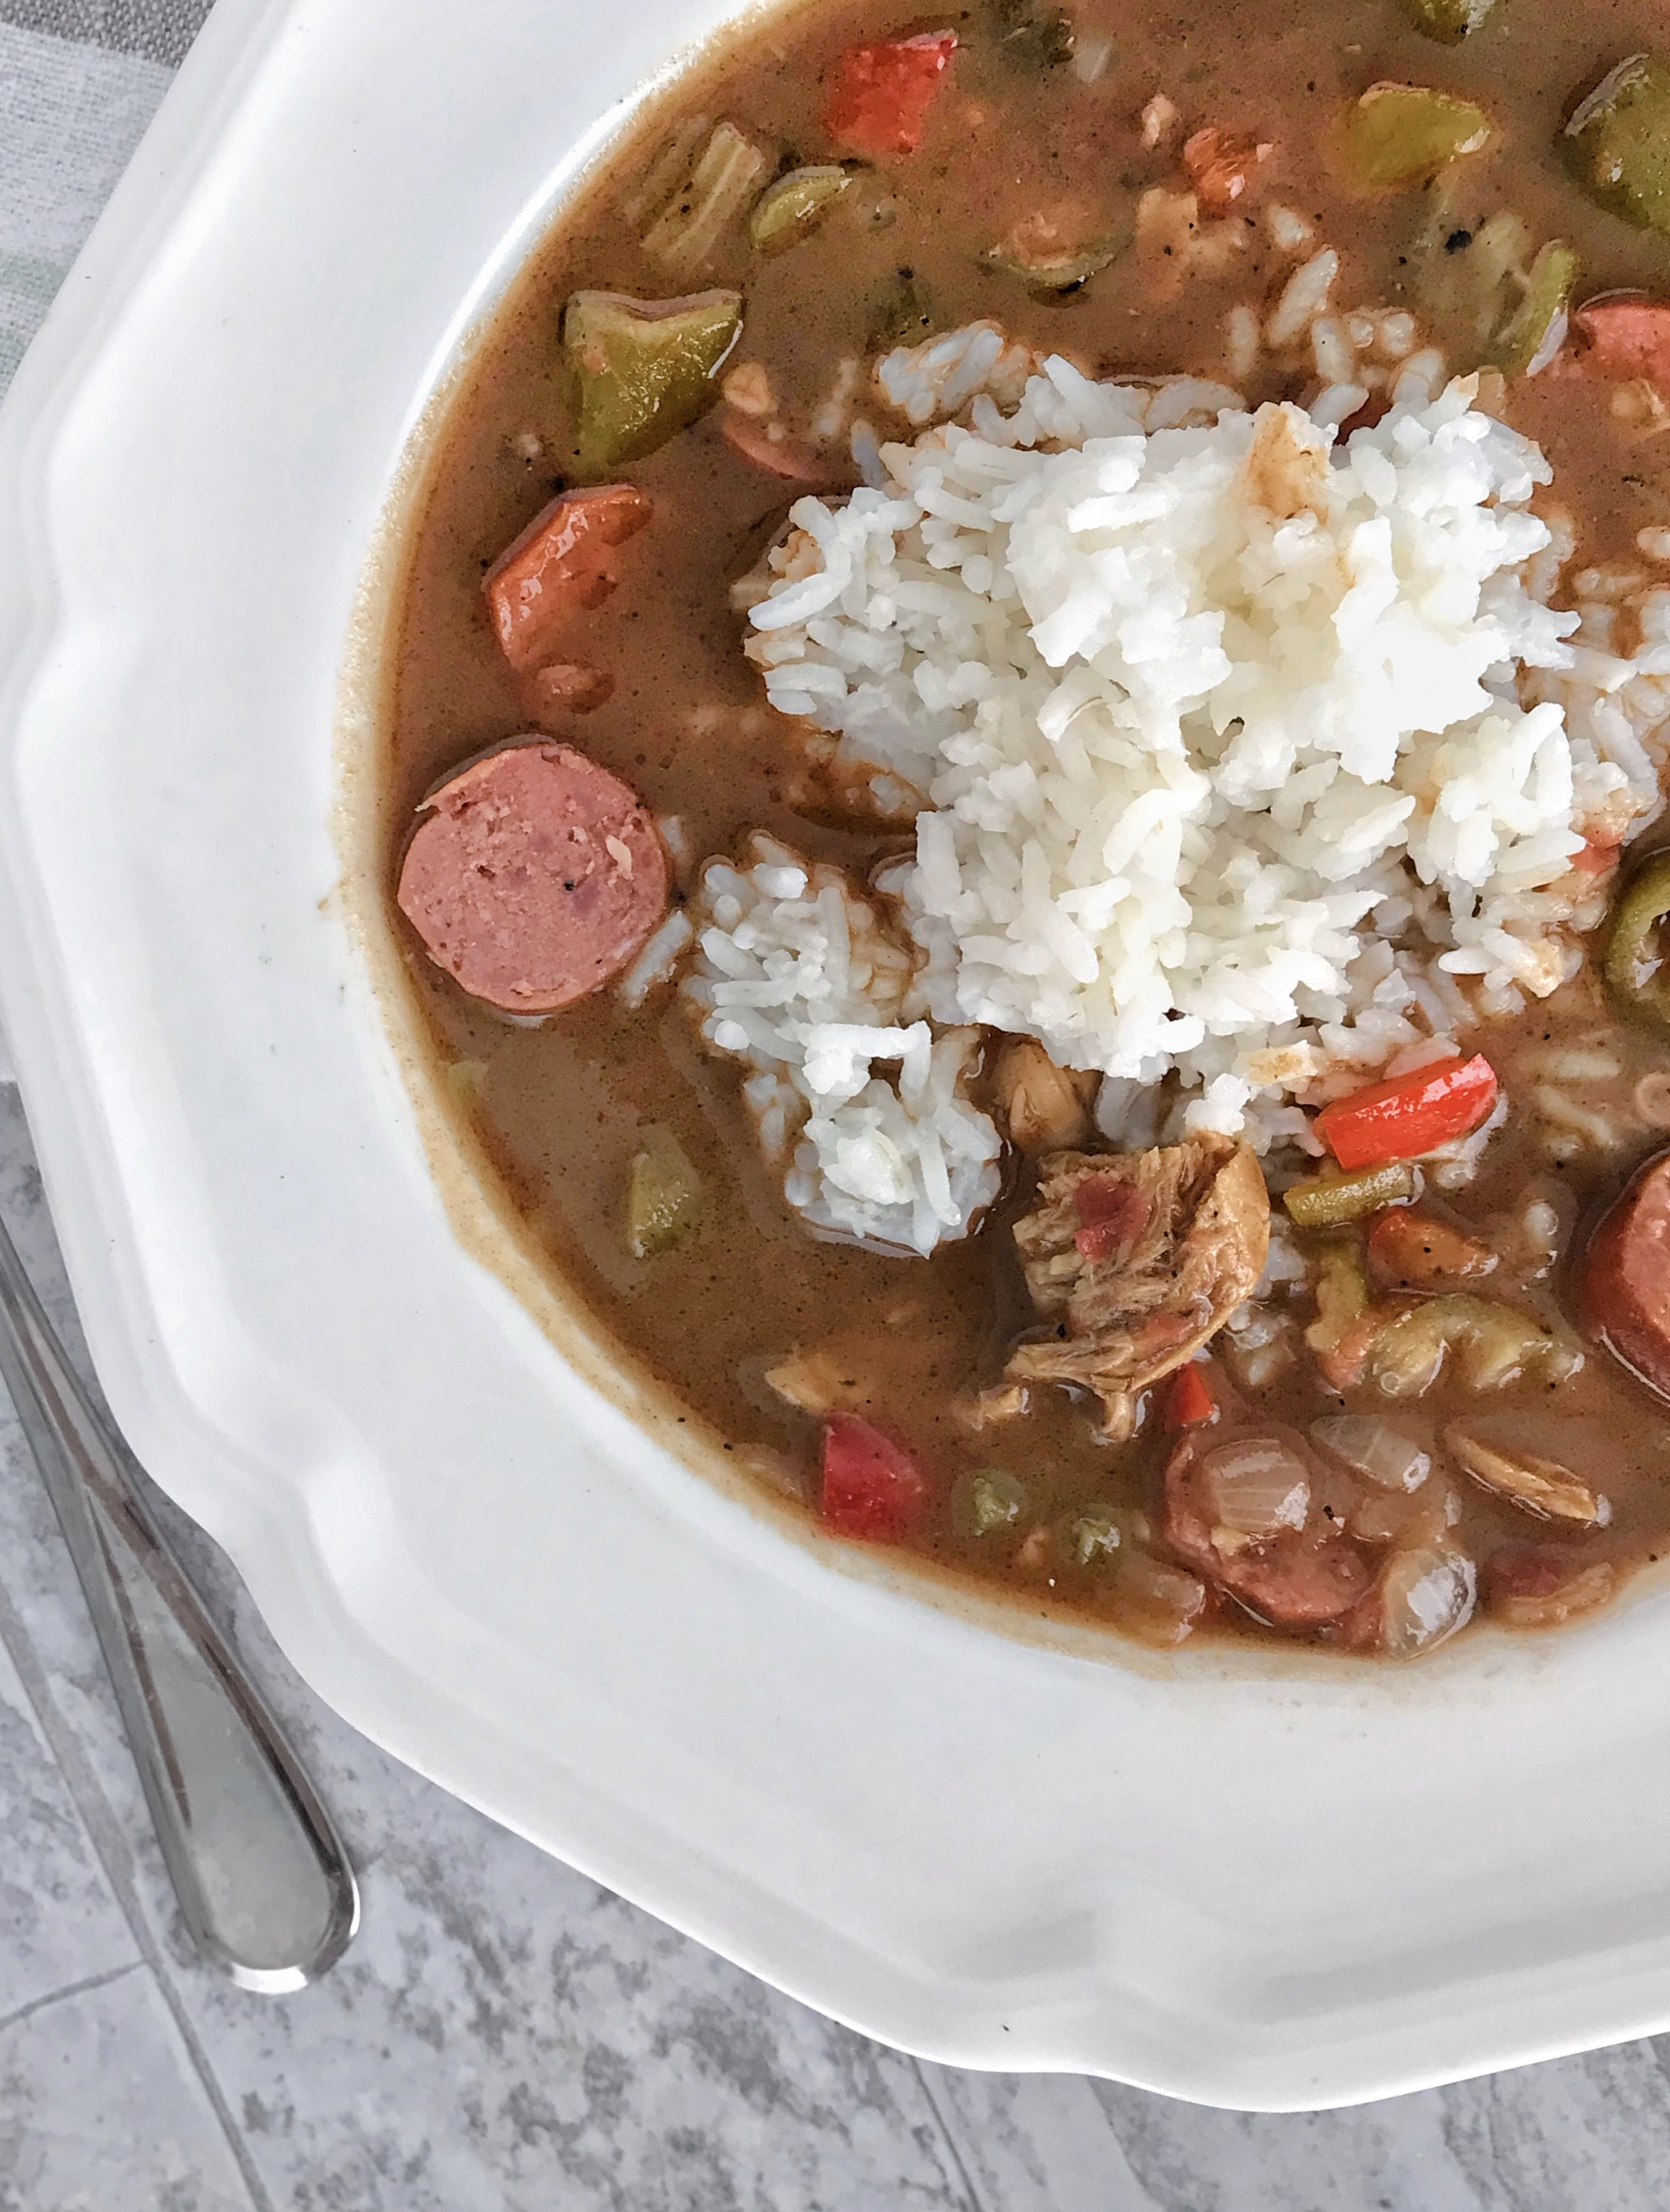 chicken and sausage gumbo with rice made with a dark roux